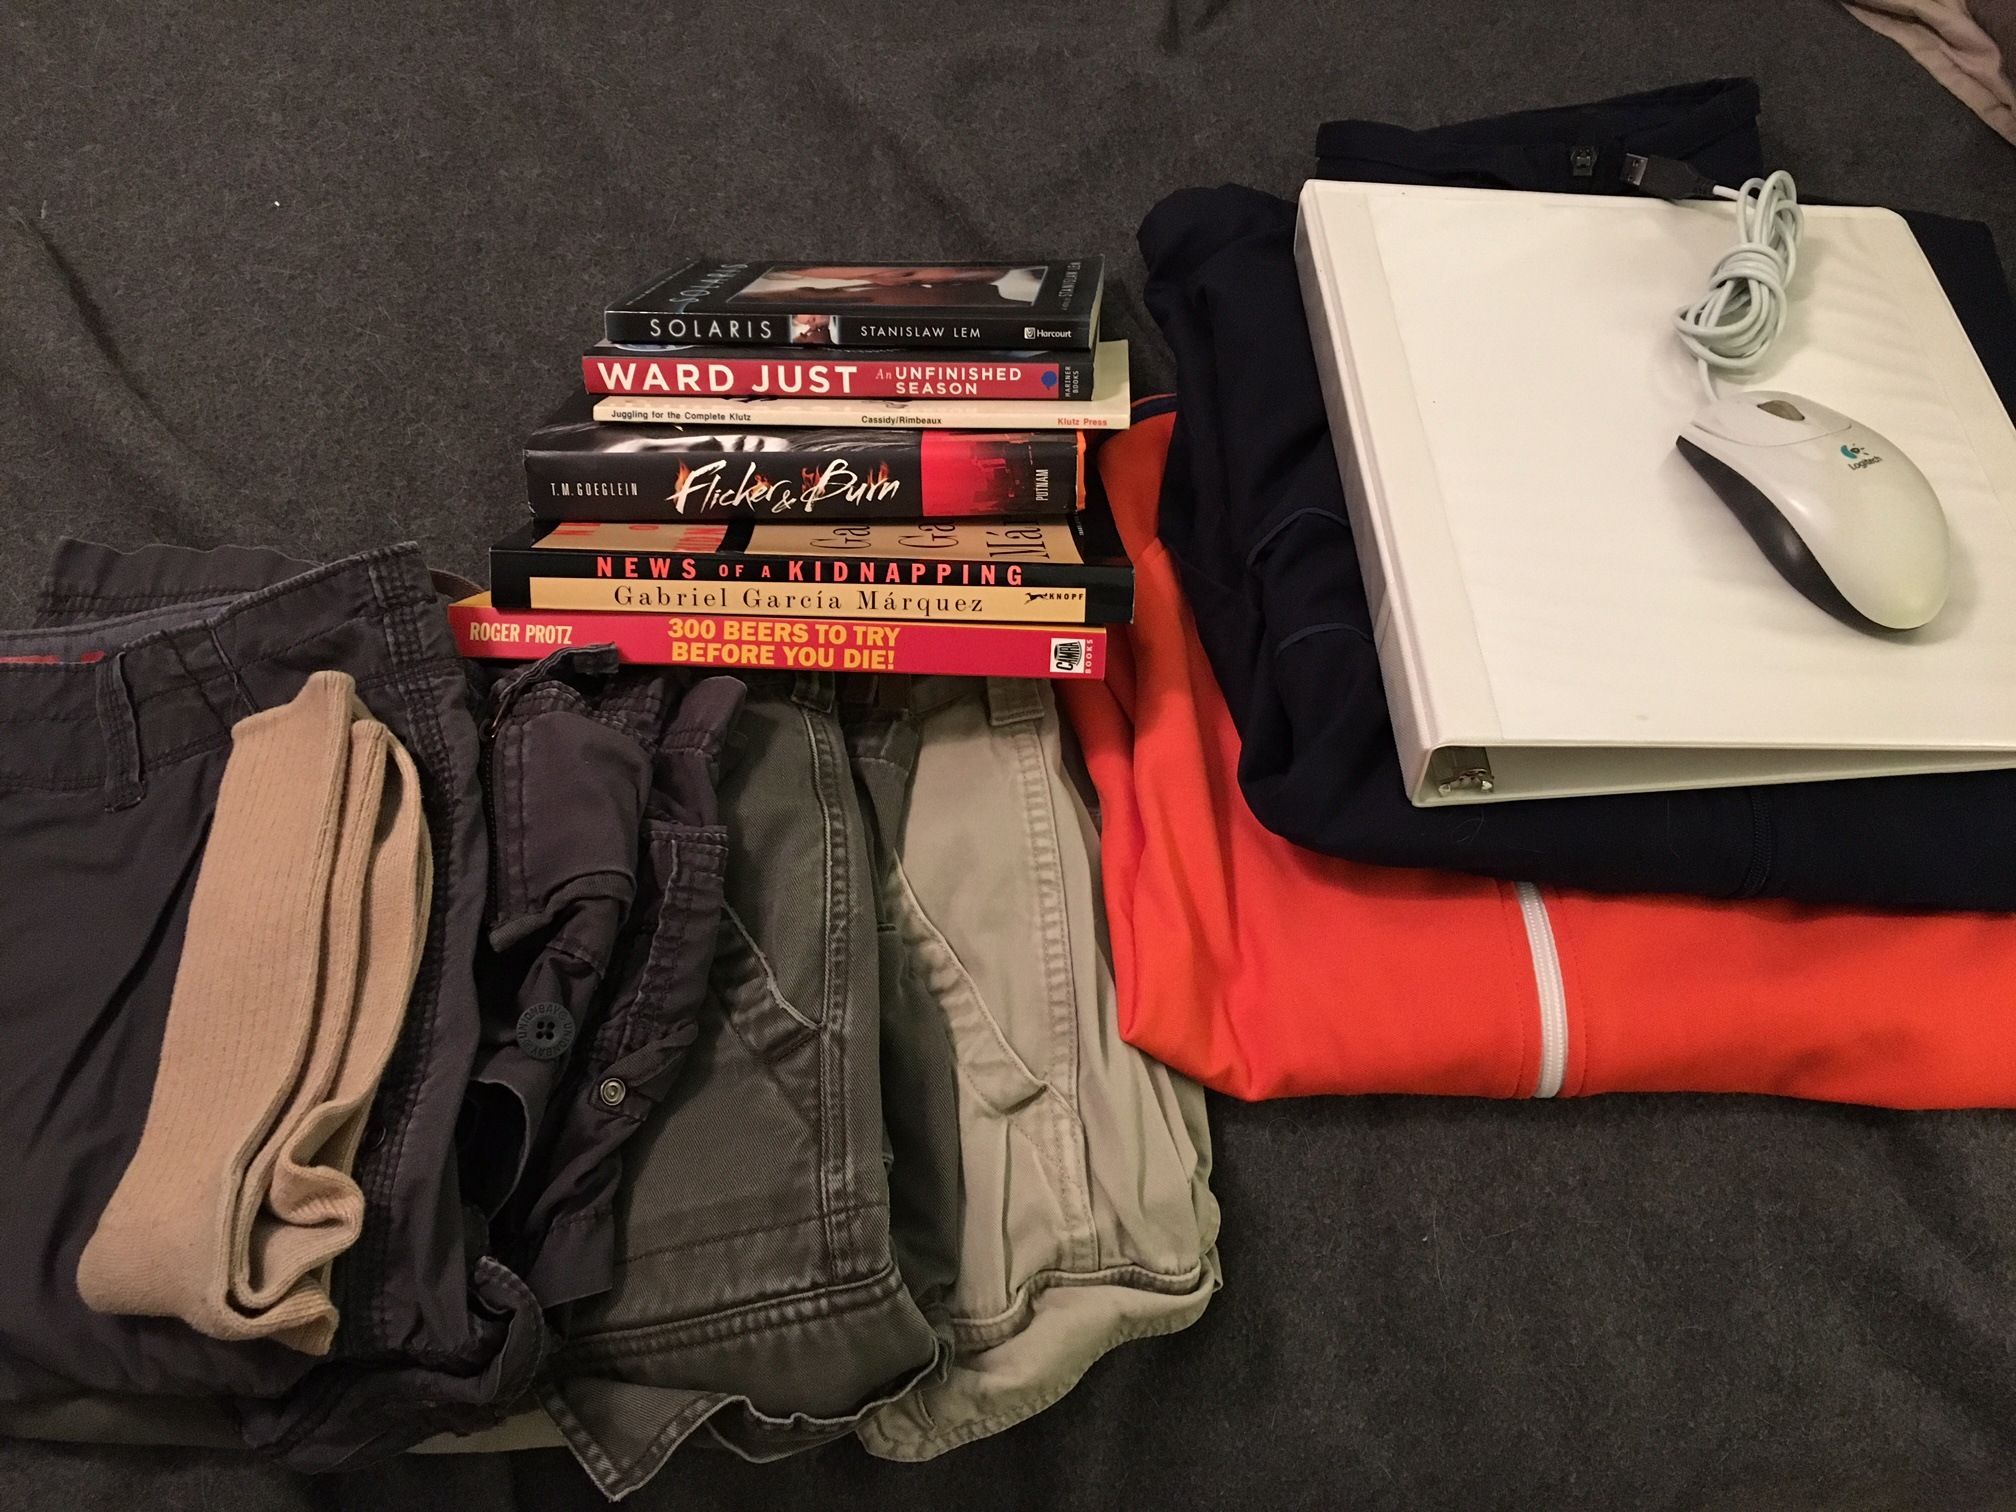 cargo shorts, a few books